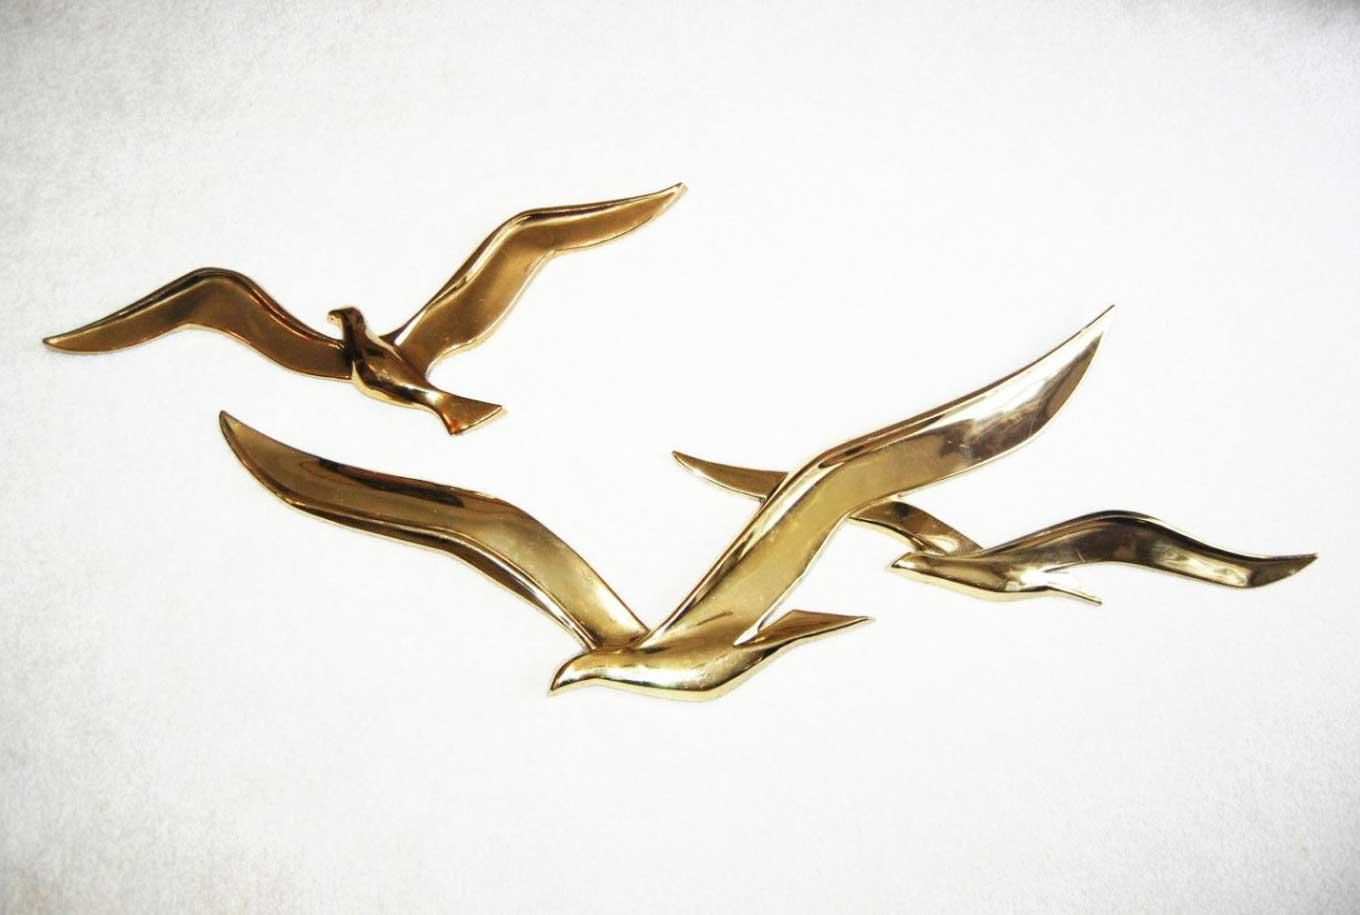 Flying Birds Metal Wall Art Gold Sculpture | Home Interior & Exterior Inside Birds In Flight Metal Wall Art (Image 10 of 20)